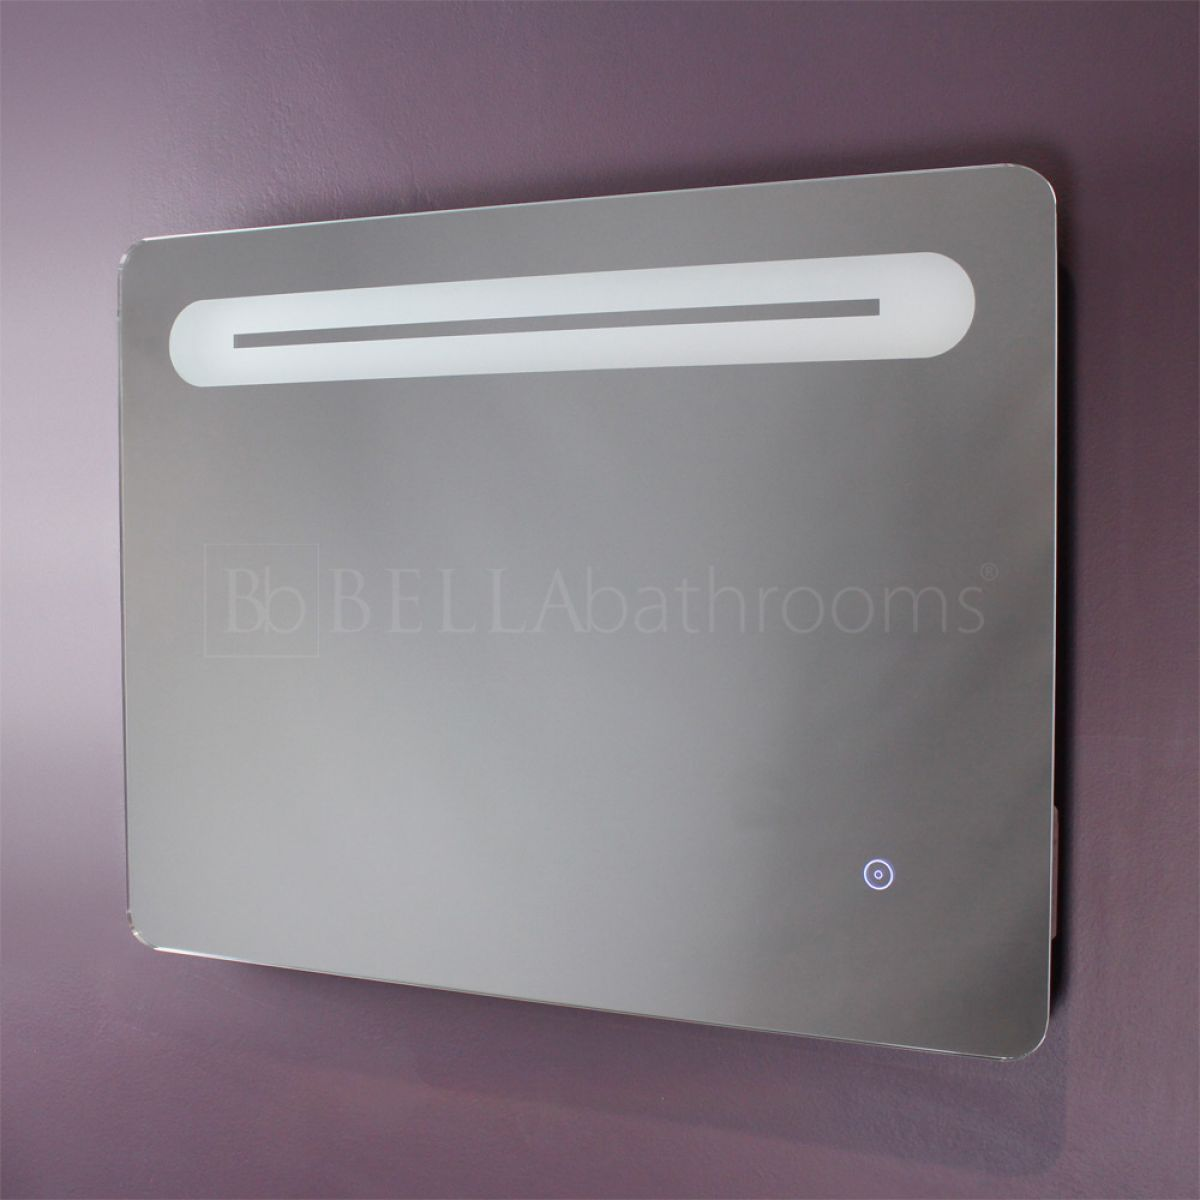 Cassellie Iridium LED Universal Bathroom Mirror